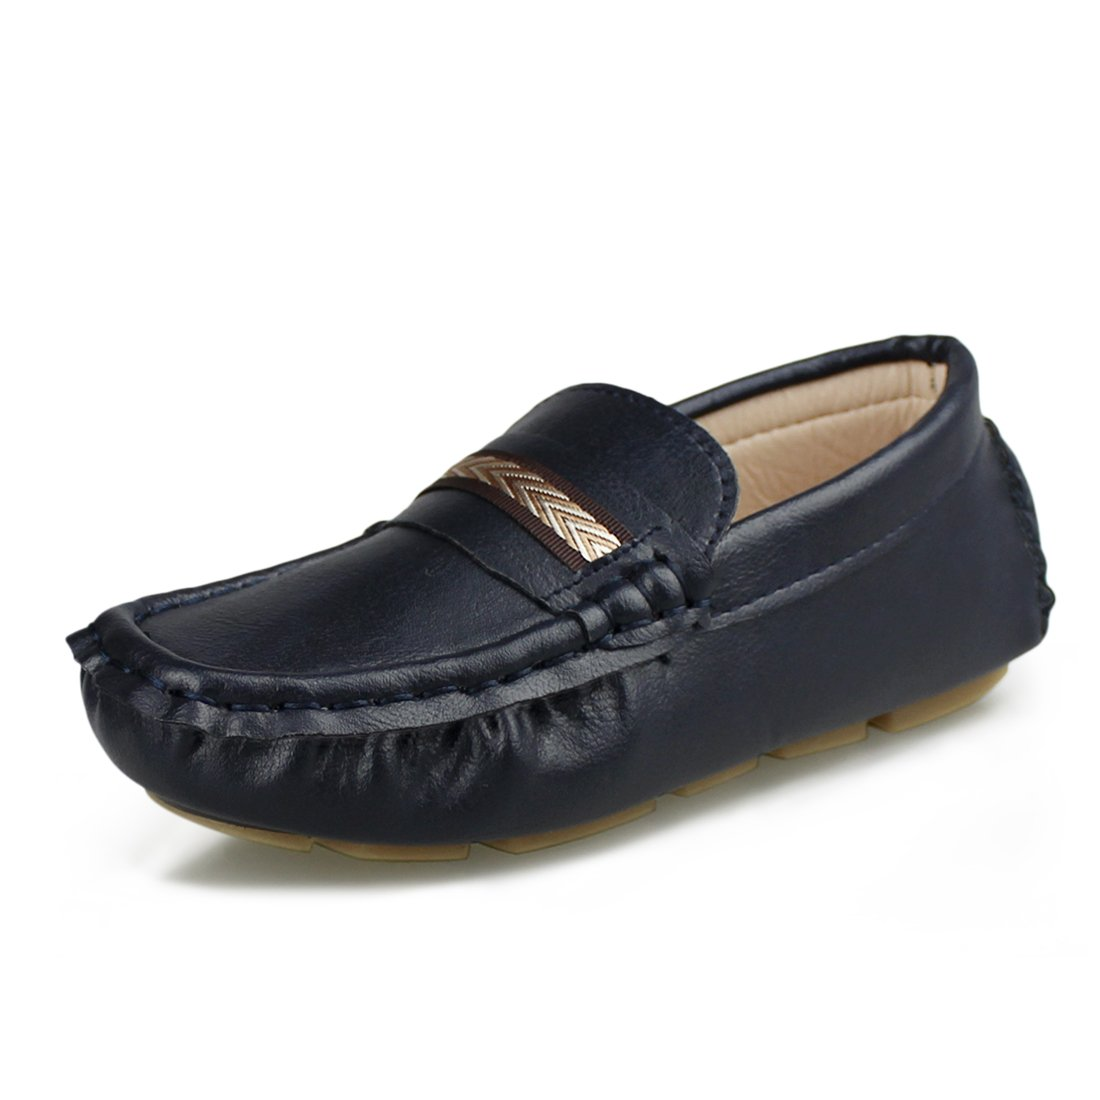 Hawkwell Kids Loafer Moccasin Oxford Driver Shoes(Toddler/Little Kid/Big Kid),Navy PU,2 M US